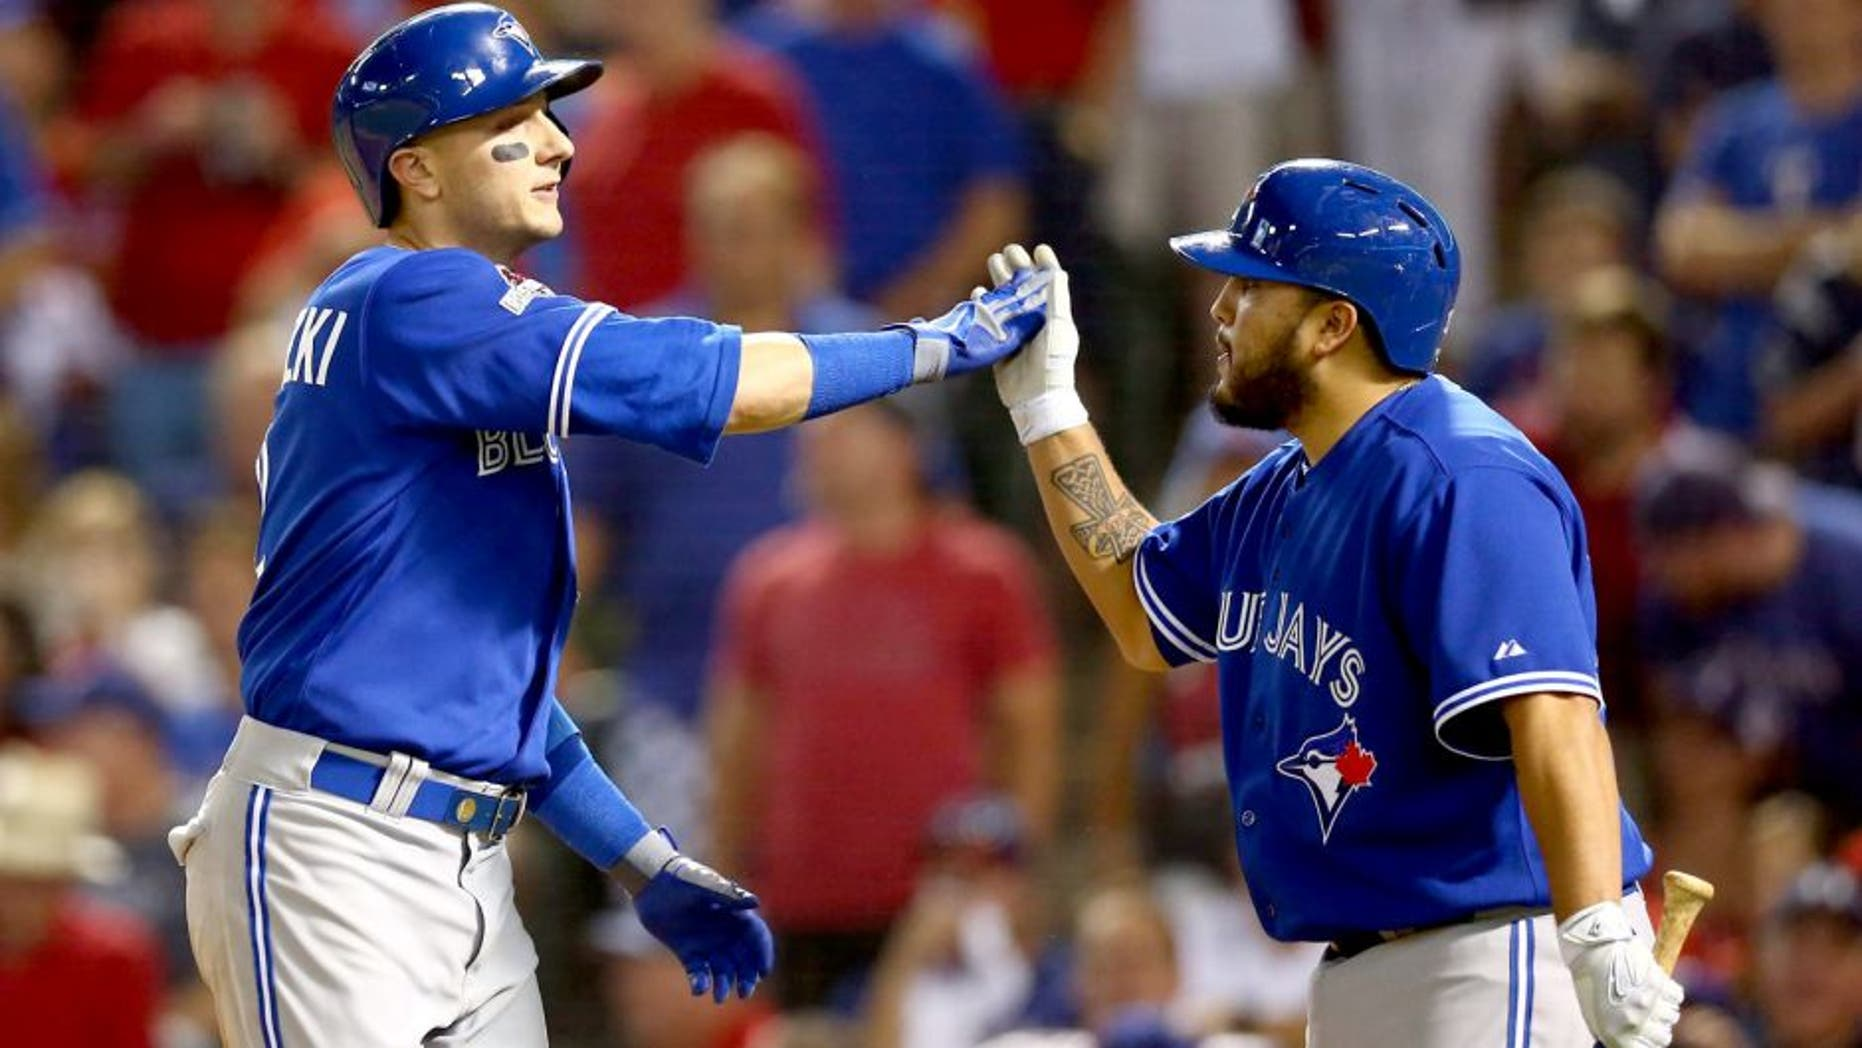 ARLINGTON, TX - OCTOBER 11: Troy Tulowitzki #2 of the Toronto Blue Jays celebrates with his teammate Dioner Navarro #30 after hitting a three run home run against Chi Chi Gonzalez #21 of the Texas Rangers in the sixth inning during game three of the American League Division Series on October 11, 2015 in Arlington, Texas. (Photo by Ronald Martinez/Getty Images)